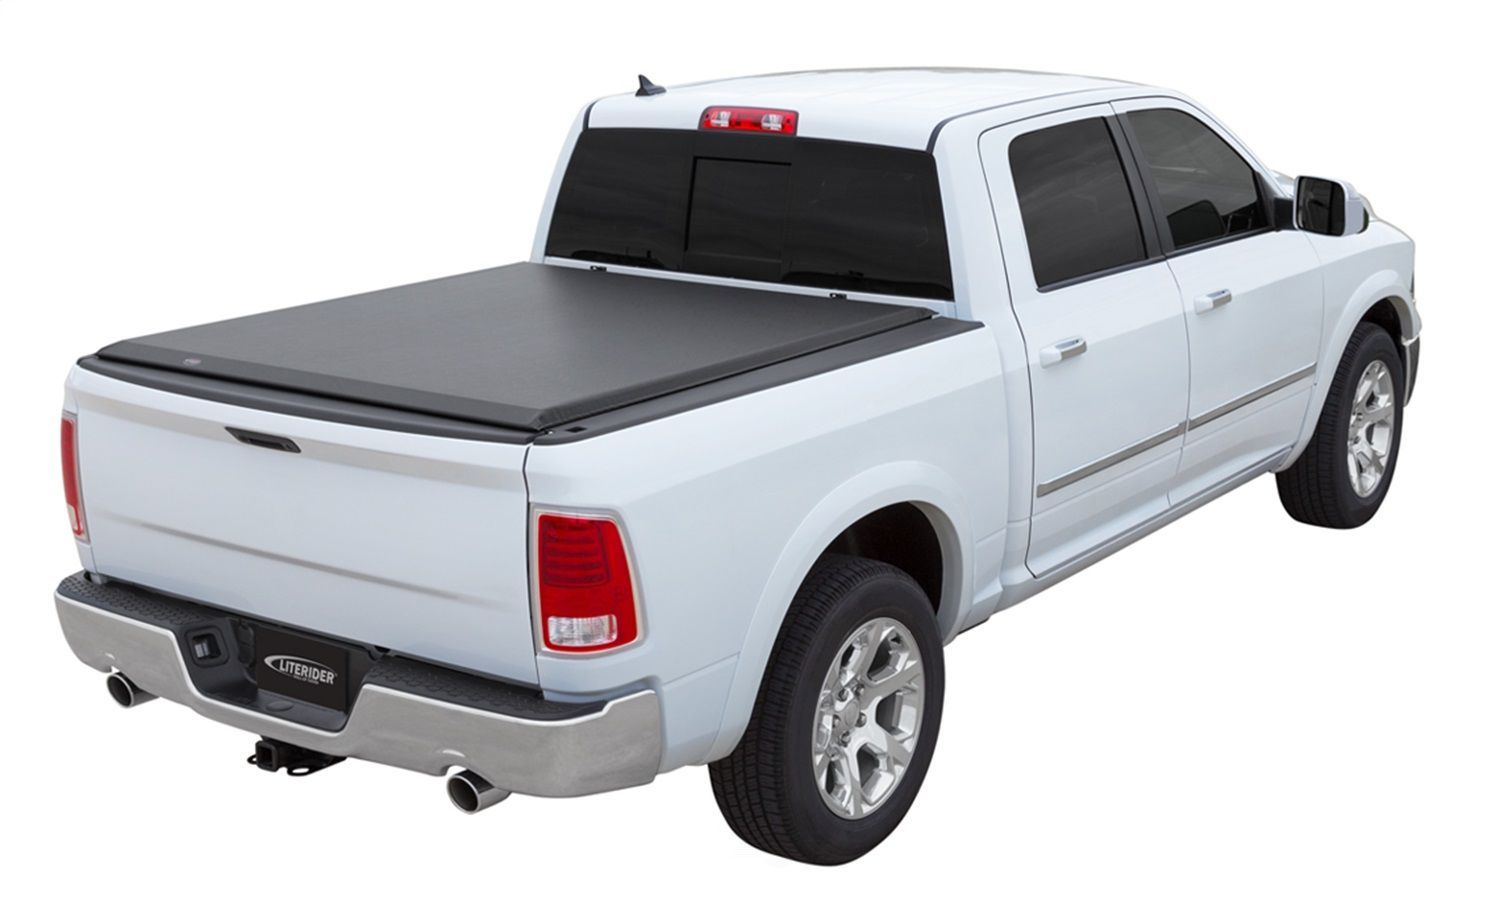 ACCESS COVER - Literider Roll-up Cover - XBP 34149